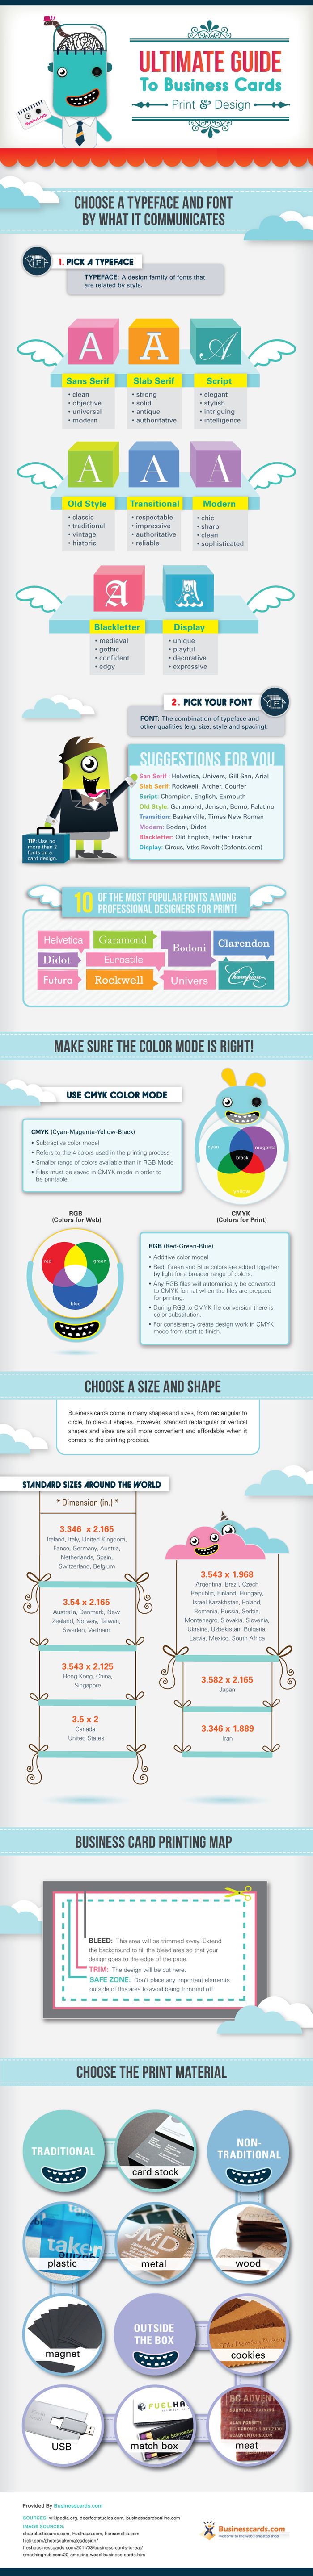 Ultimate Guide To Business Cards #Infographic